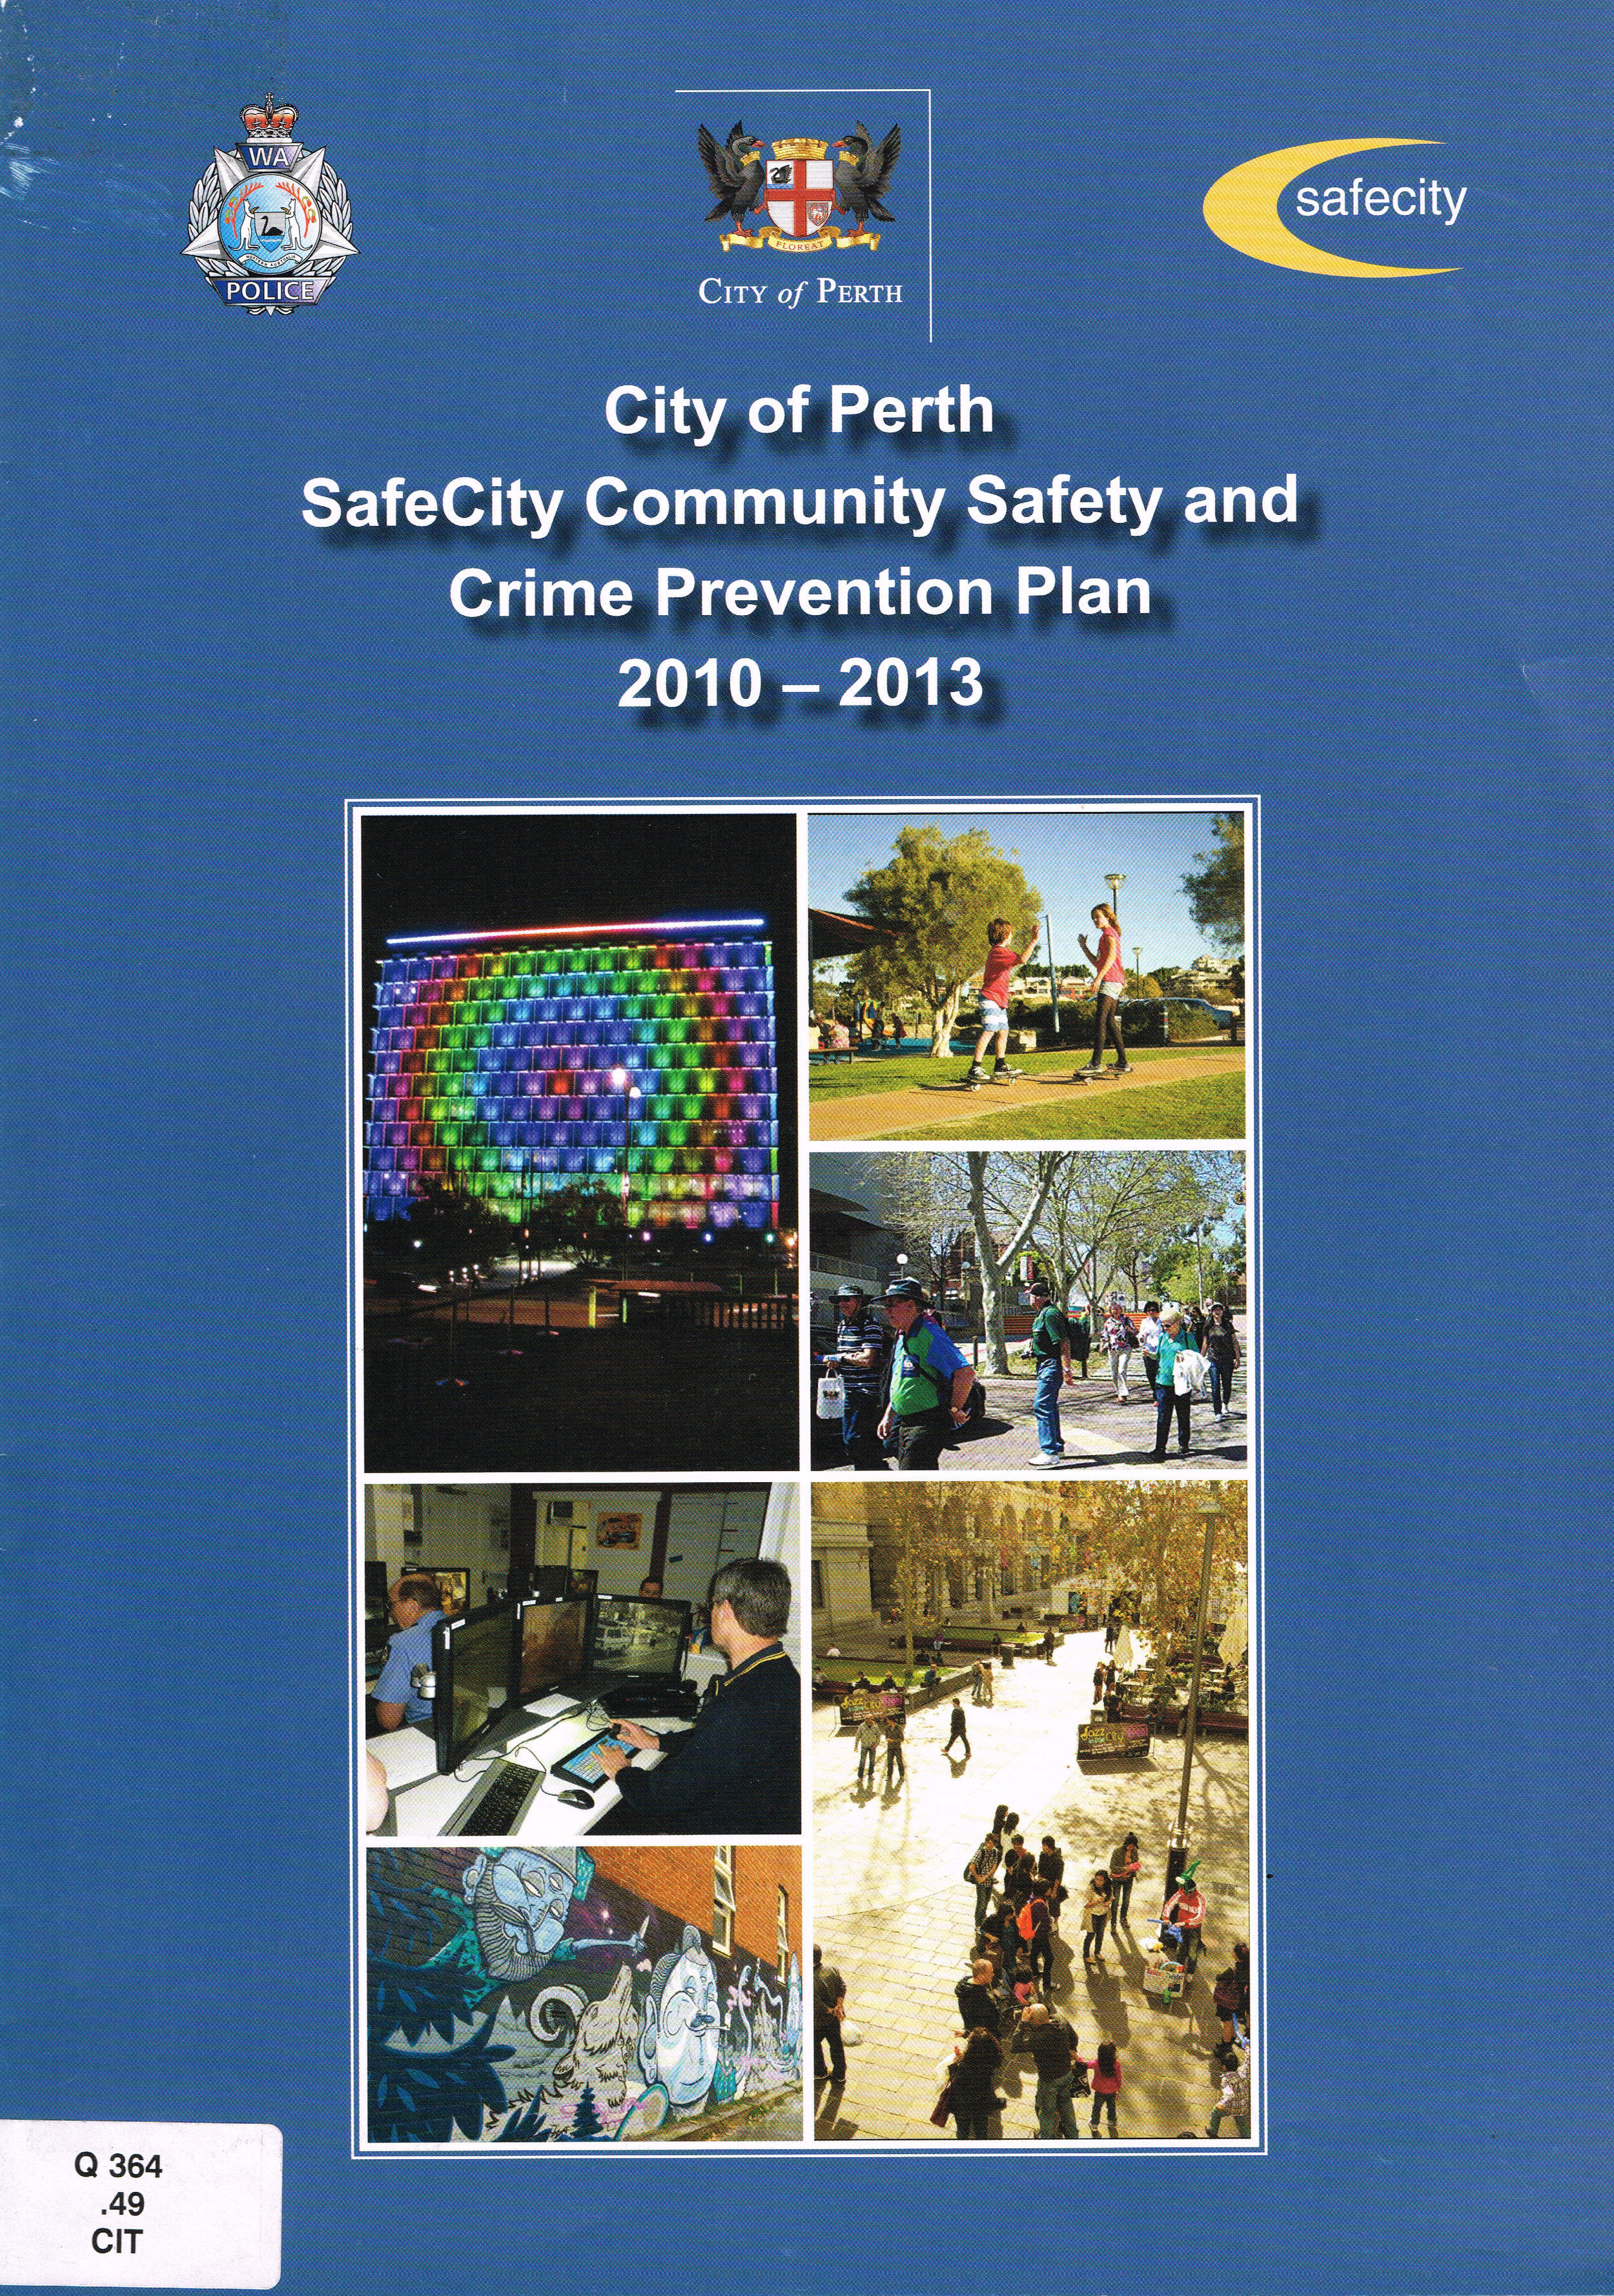 SafeCity Community Safety and Crime Prevention Plan 2010-2013  WA Police, City of Perth and SafeCity